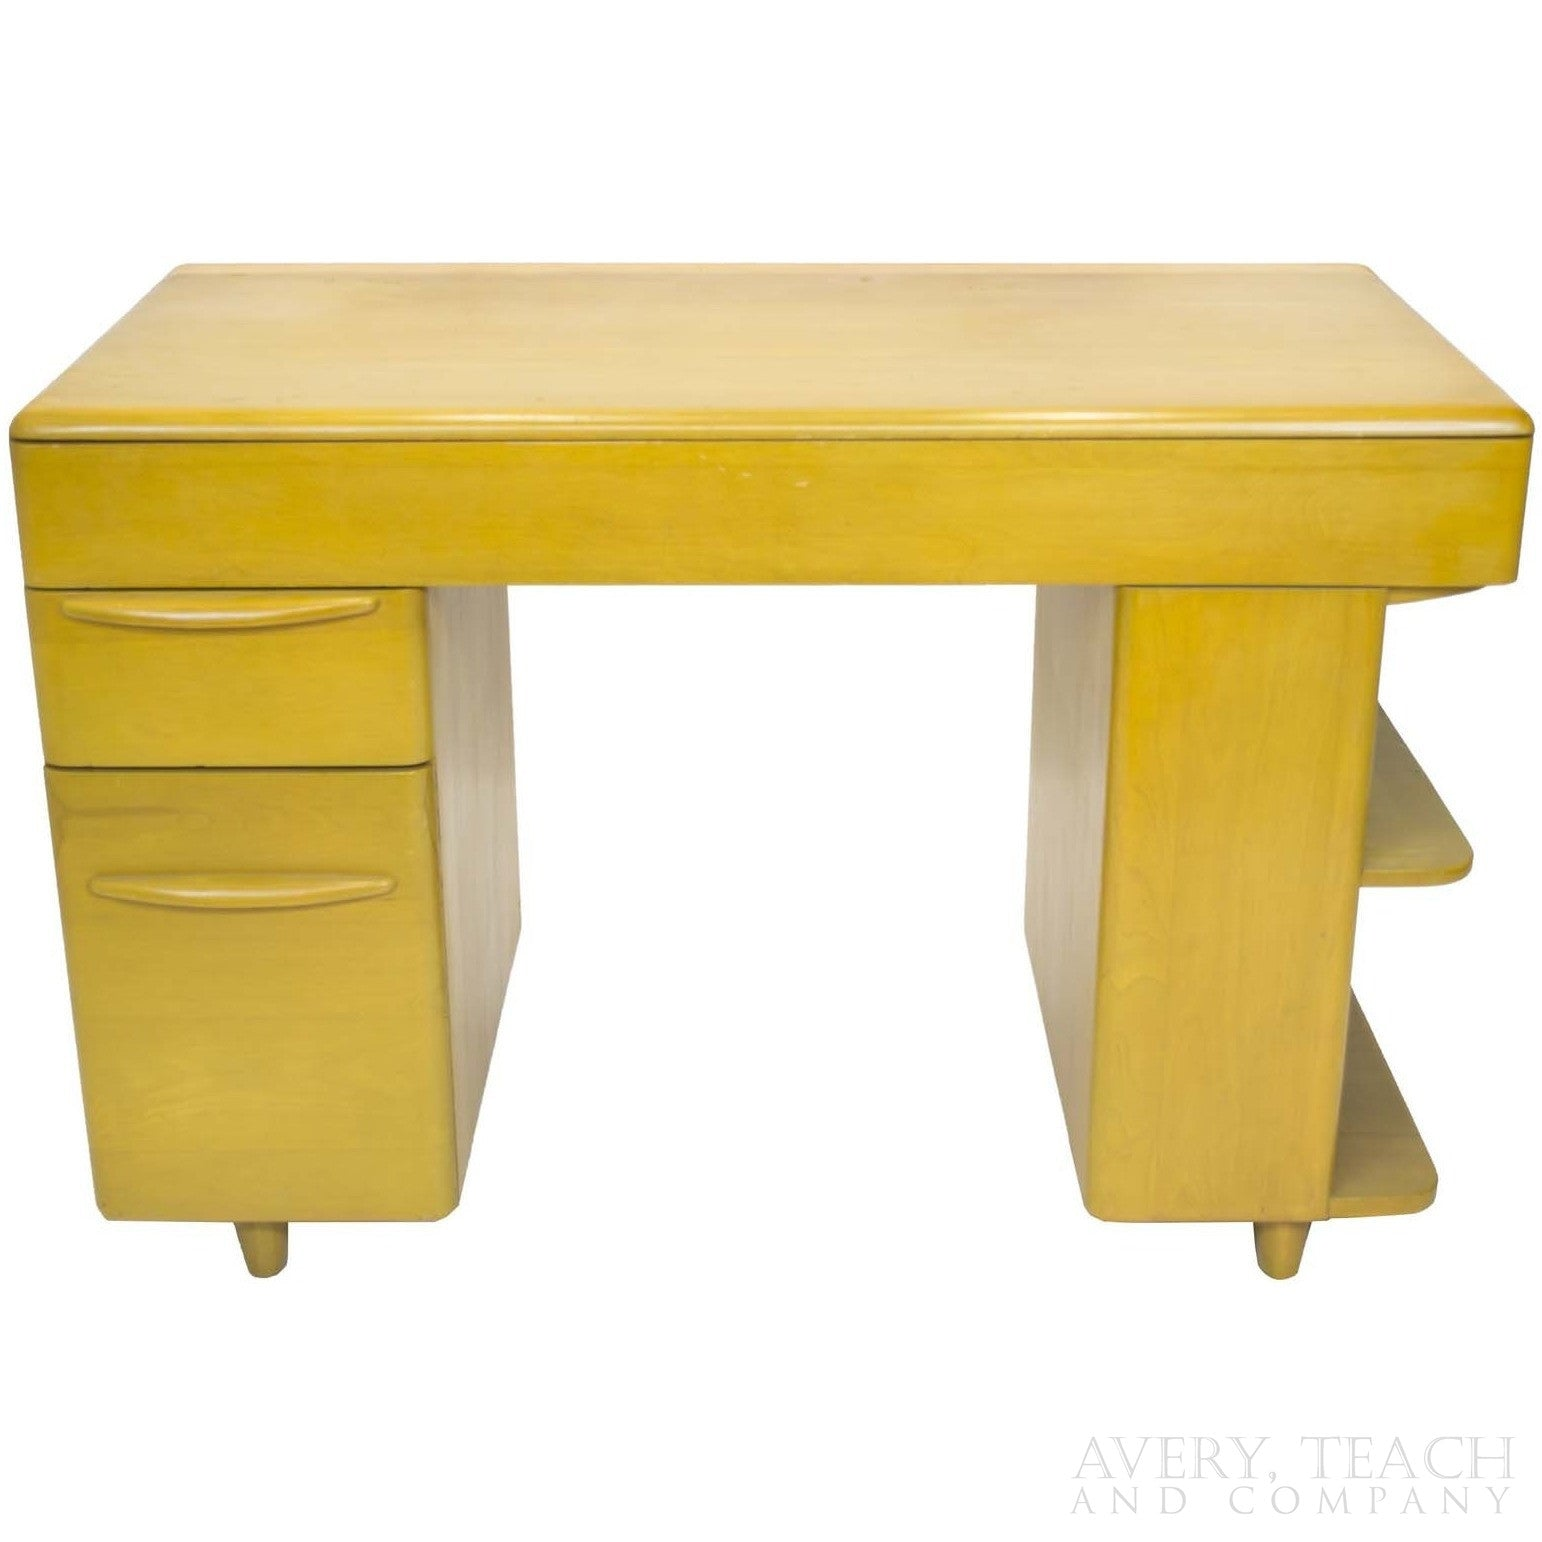 Heywood Wakefield Student Desk - Avery, Teach and Co.